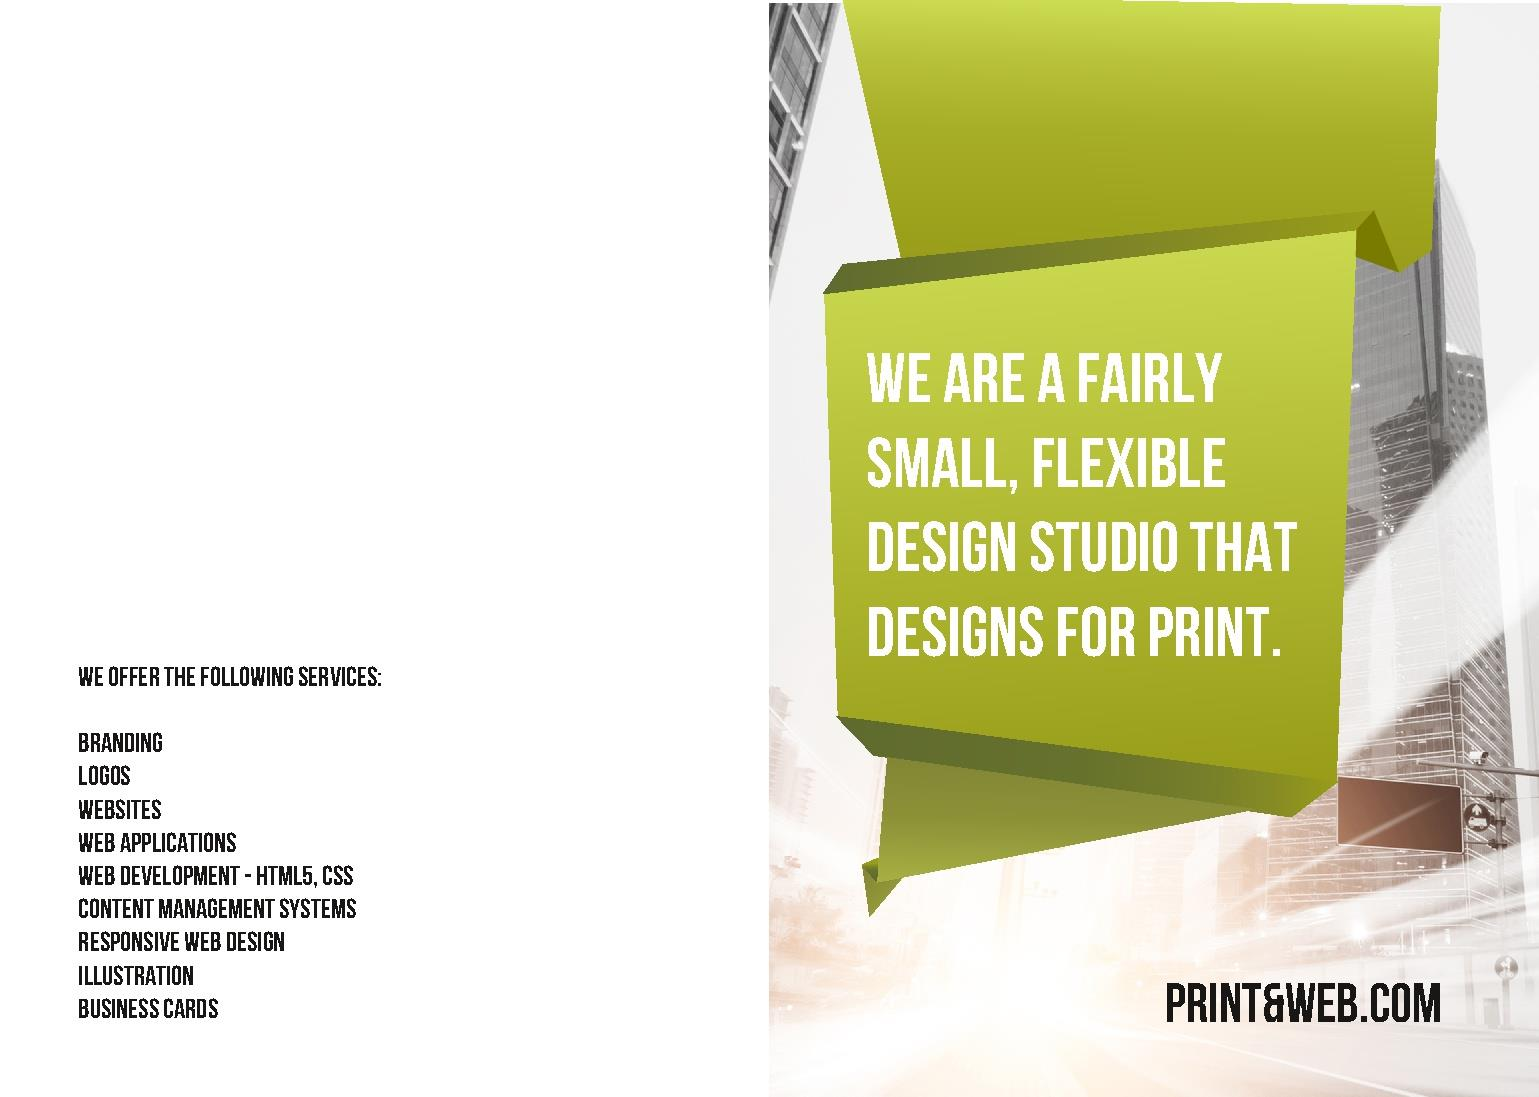 Business cards leaflets gallery free business cards a5 folded leaflet design templates instantprint webflex folded leaflets design template magicingreecefo gallery magicingreecefo Image collections